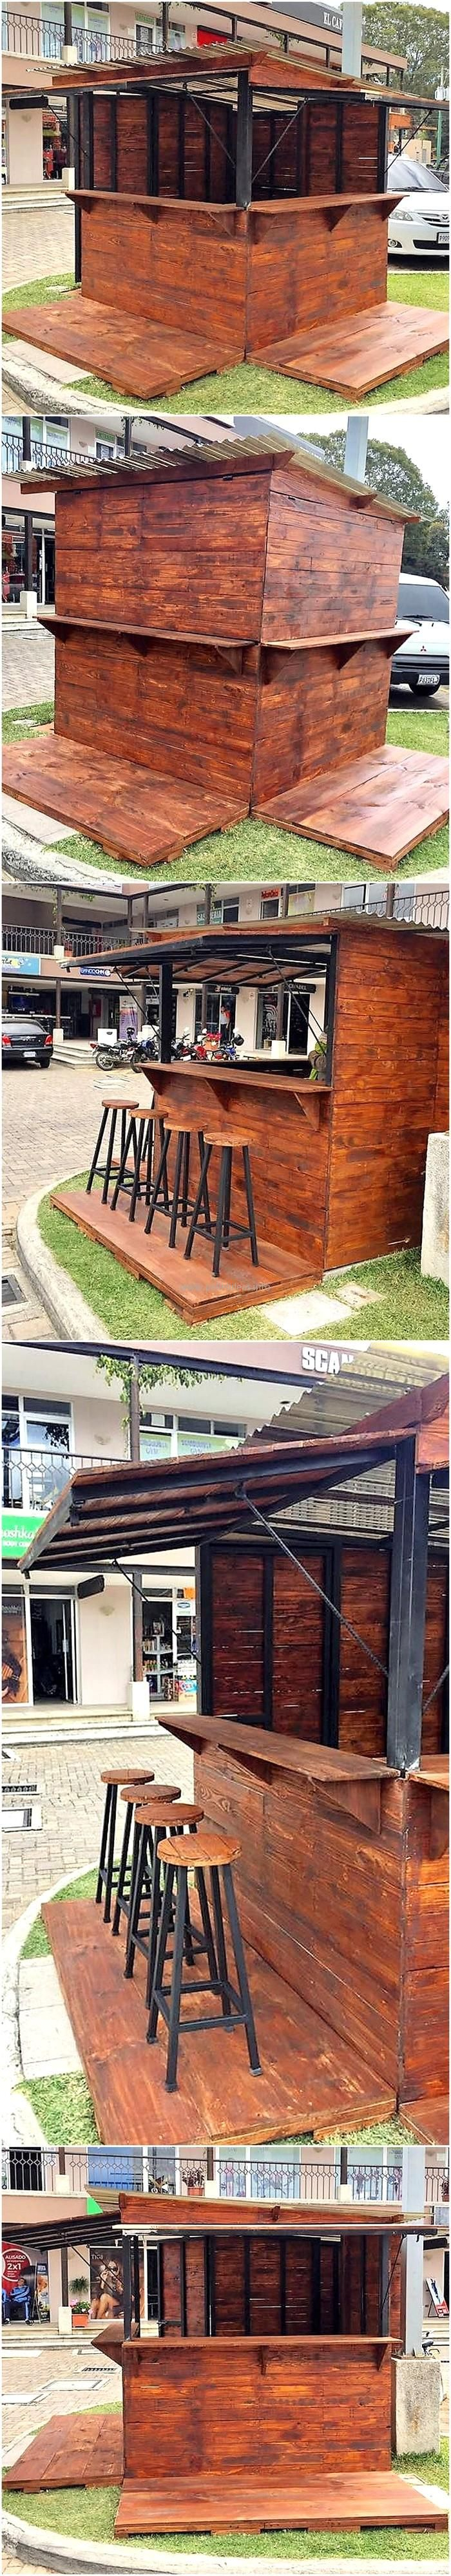 Reclaimed Wood Pallets Patio Bar Plan | Partykeller, Paletten ideen ...